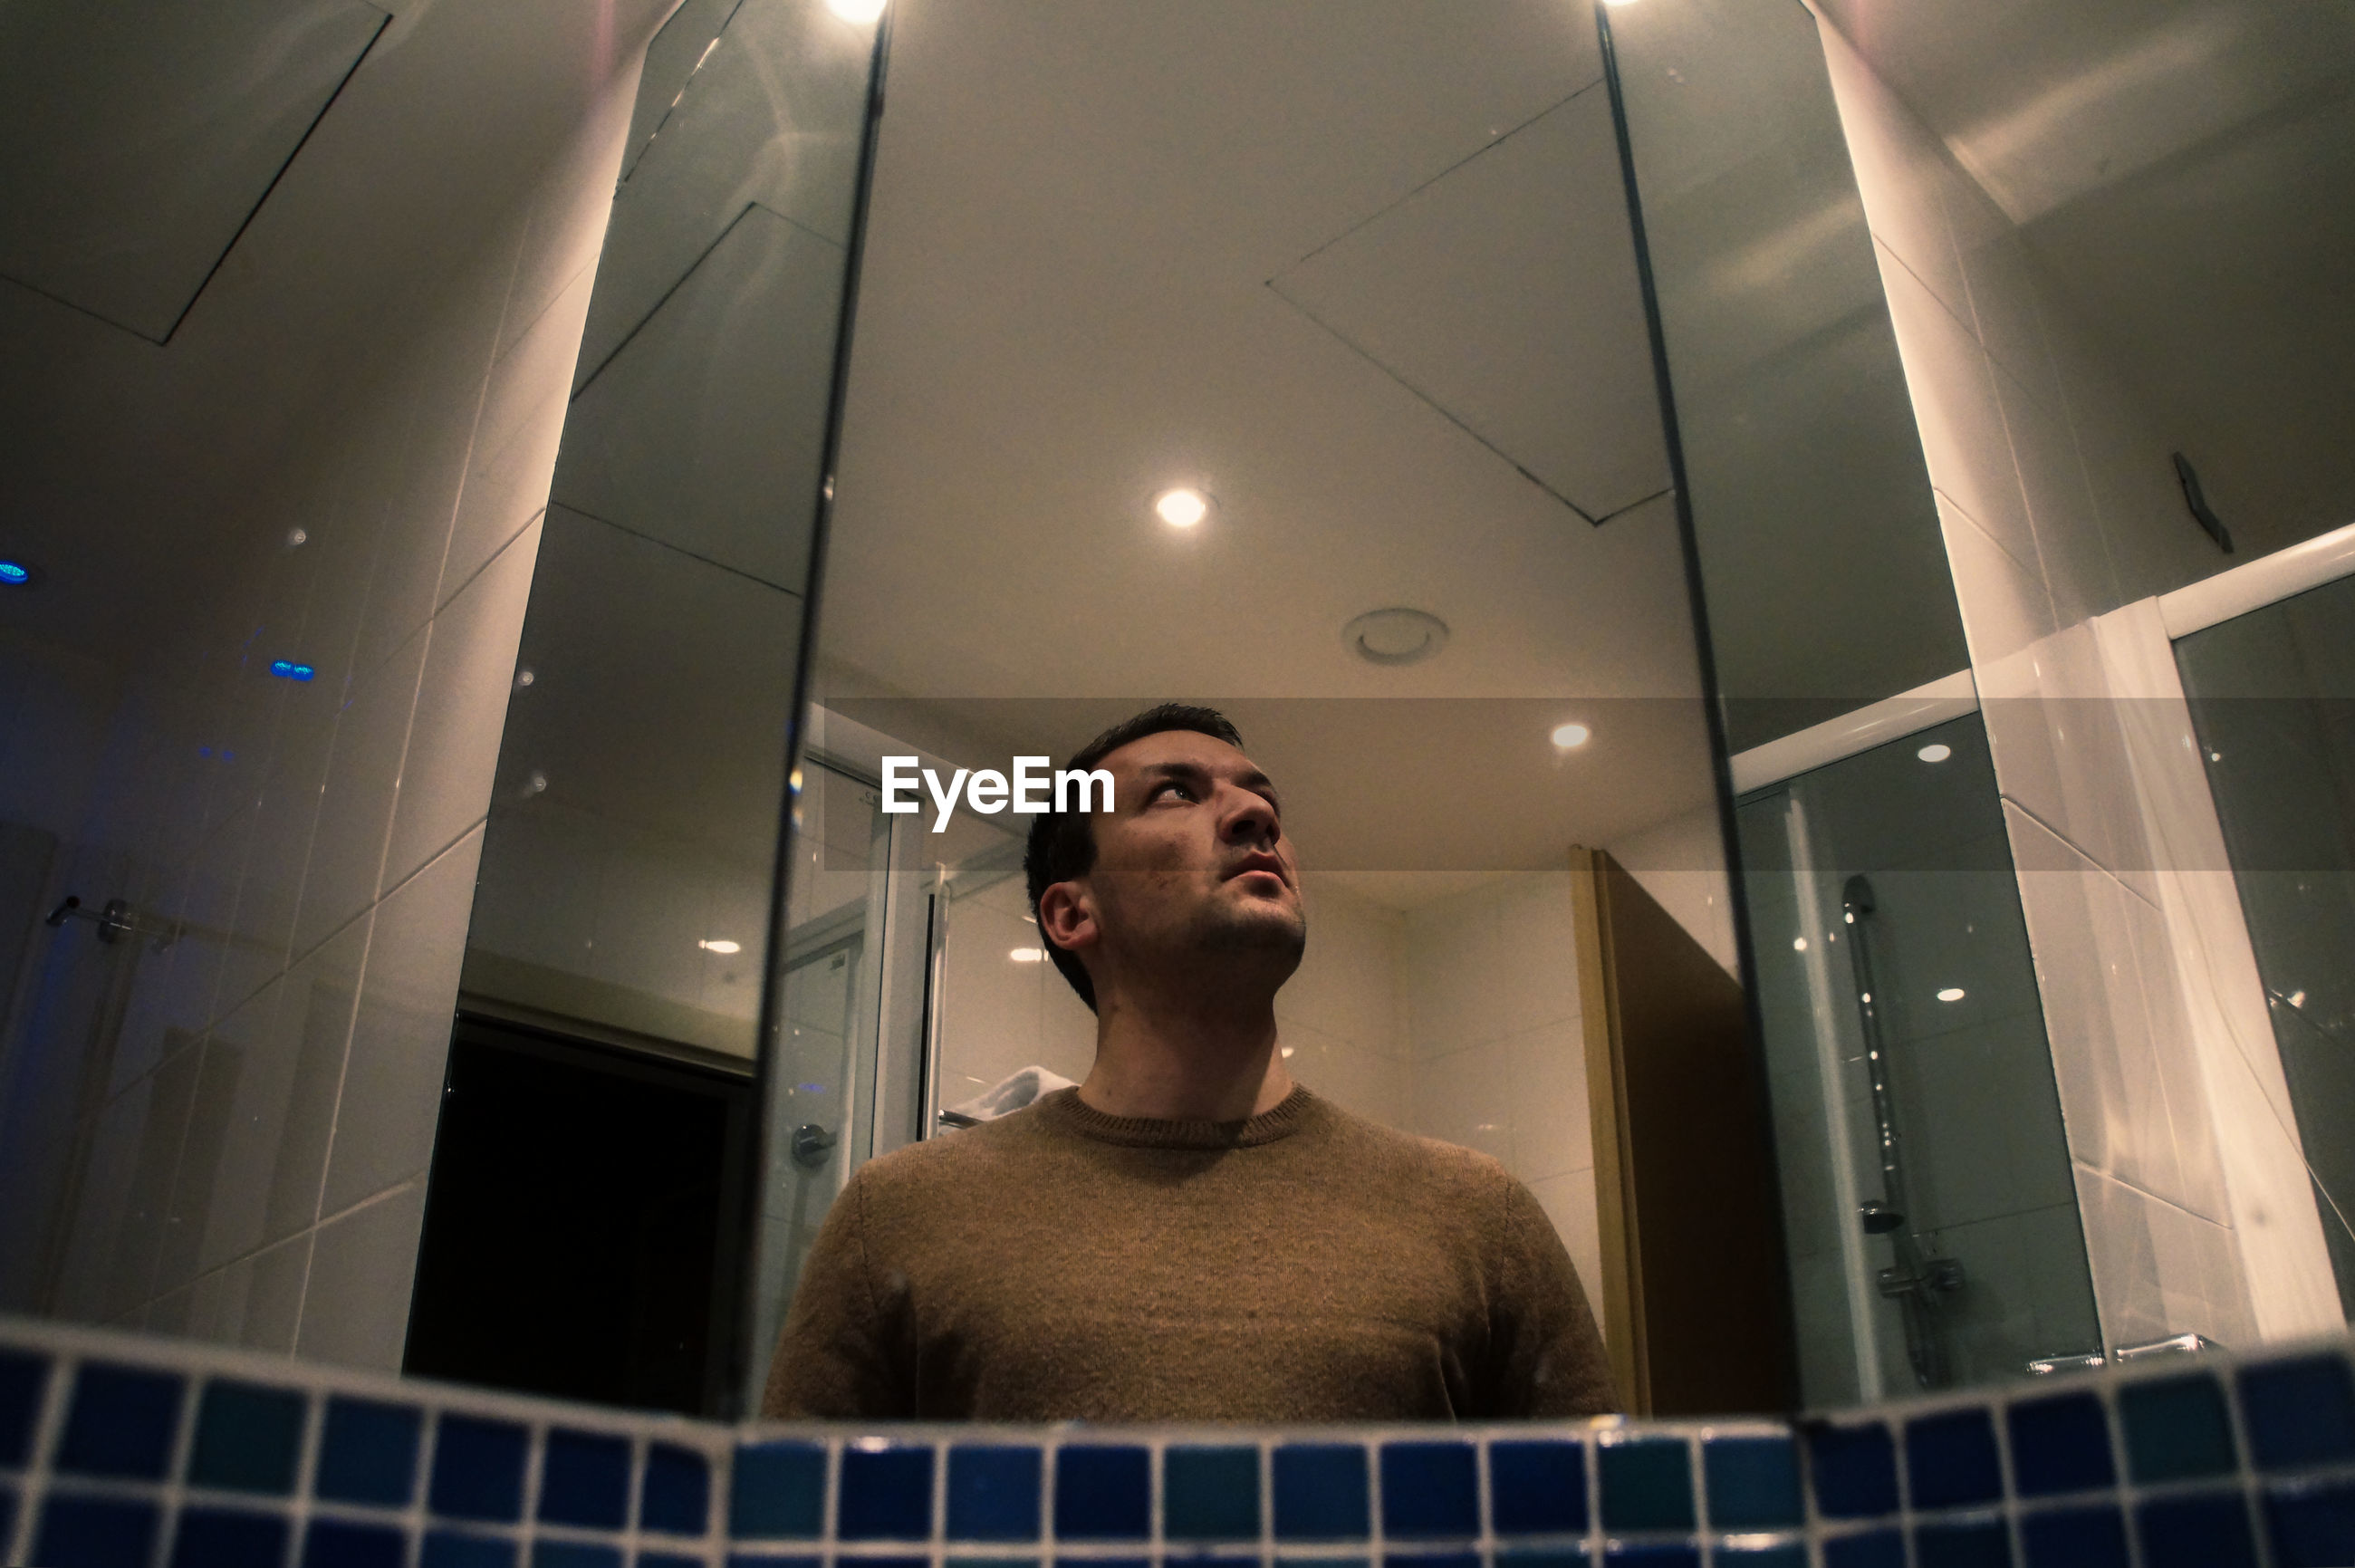 Low angle view of young man looking away reflecting on mirror in bathroom